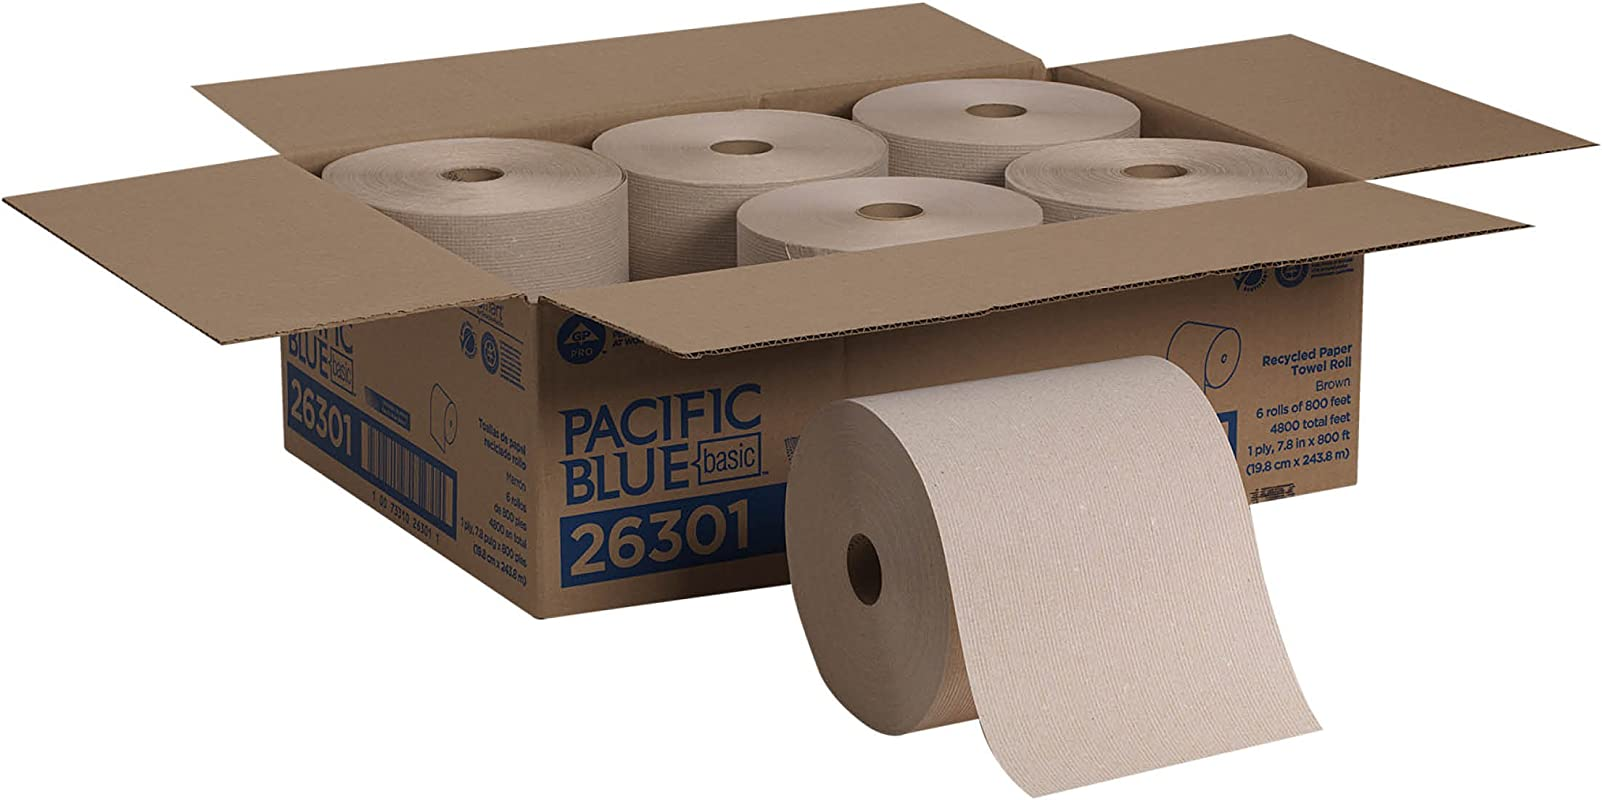 Pacific Blue Basic Recycled Hardwound Paper Towel Rolls By GP PRO Georgia Pacific Brown 26301 800 Feet Per Roll 6 Rolls Per Case